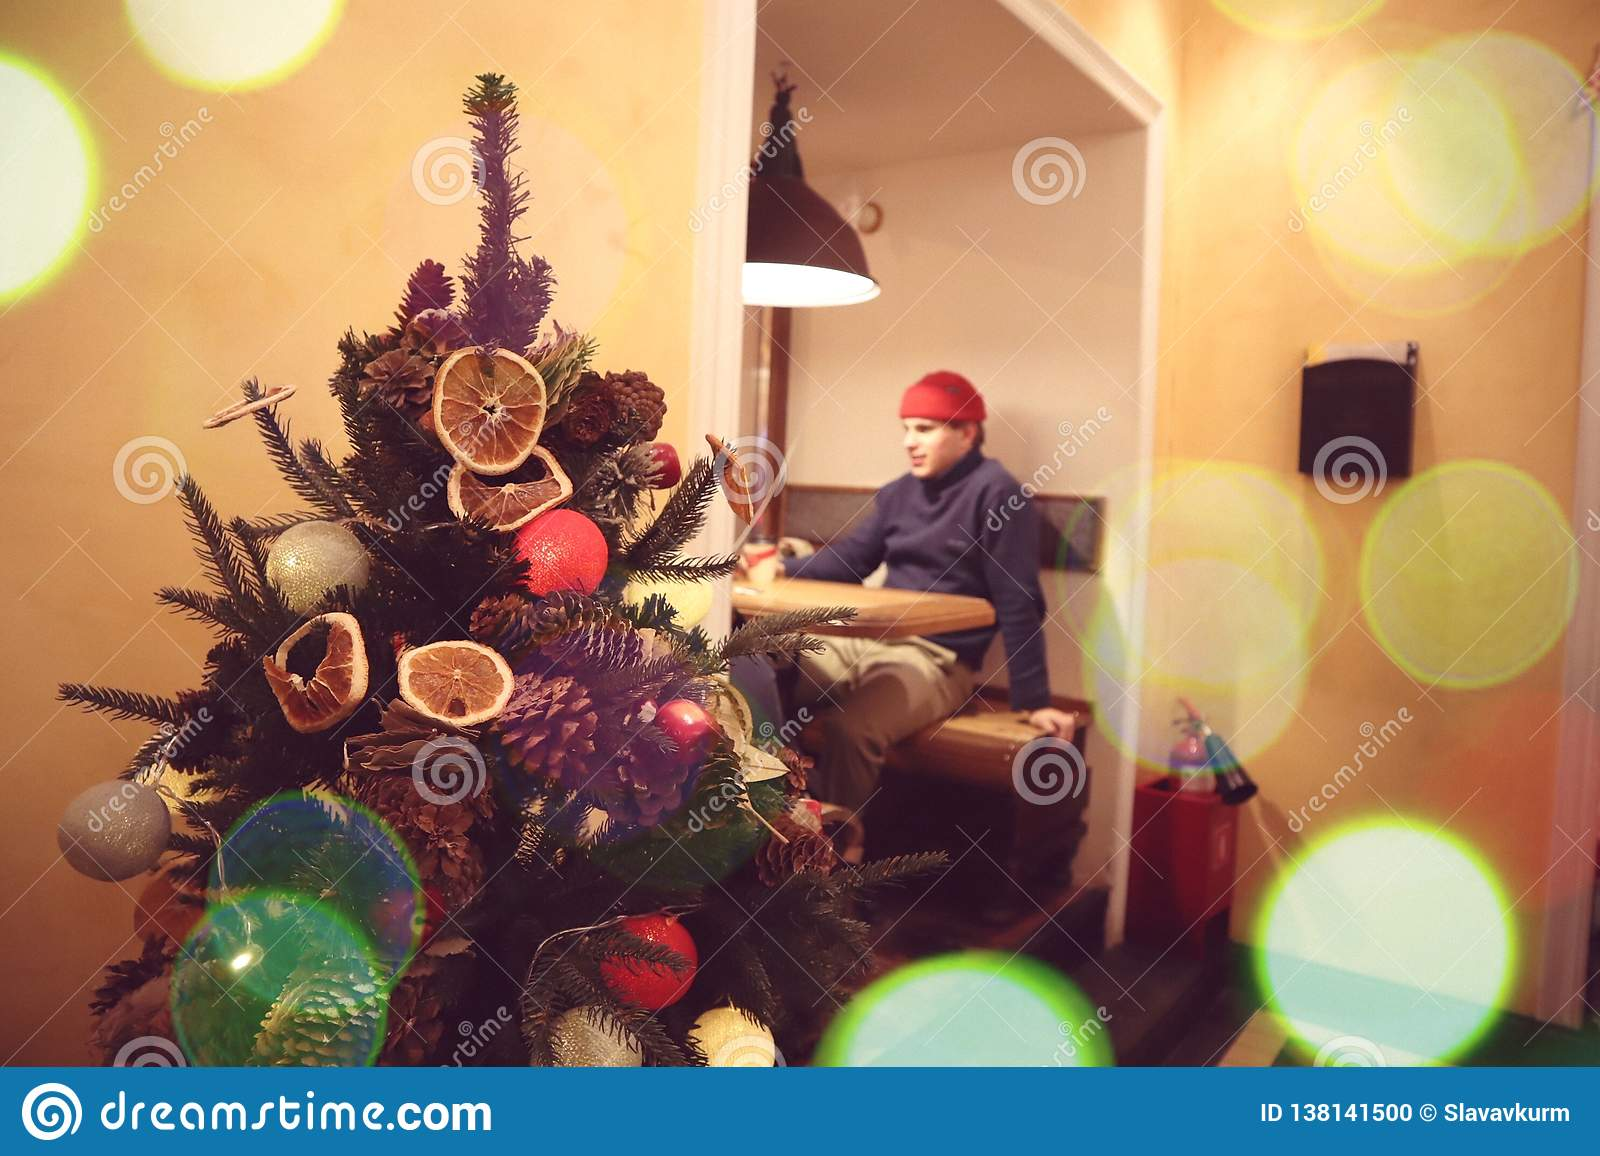 2 144 Cafe Christmas Decorations Photos Free Royalty Free Stock Photos From Dreamstime